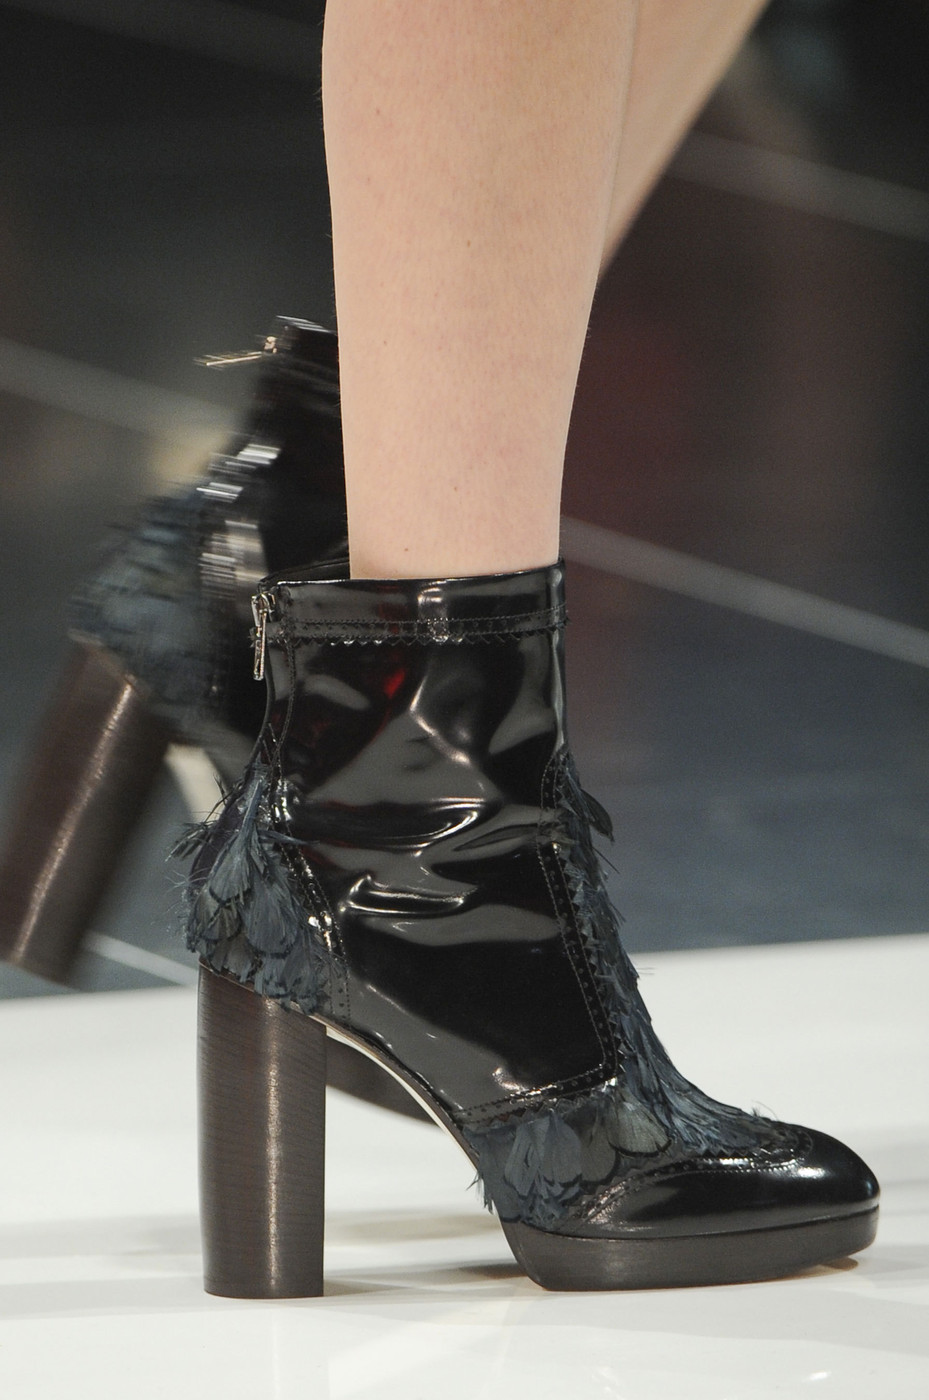 Christopher Kane F/W 2013 RTW – ankle boots